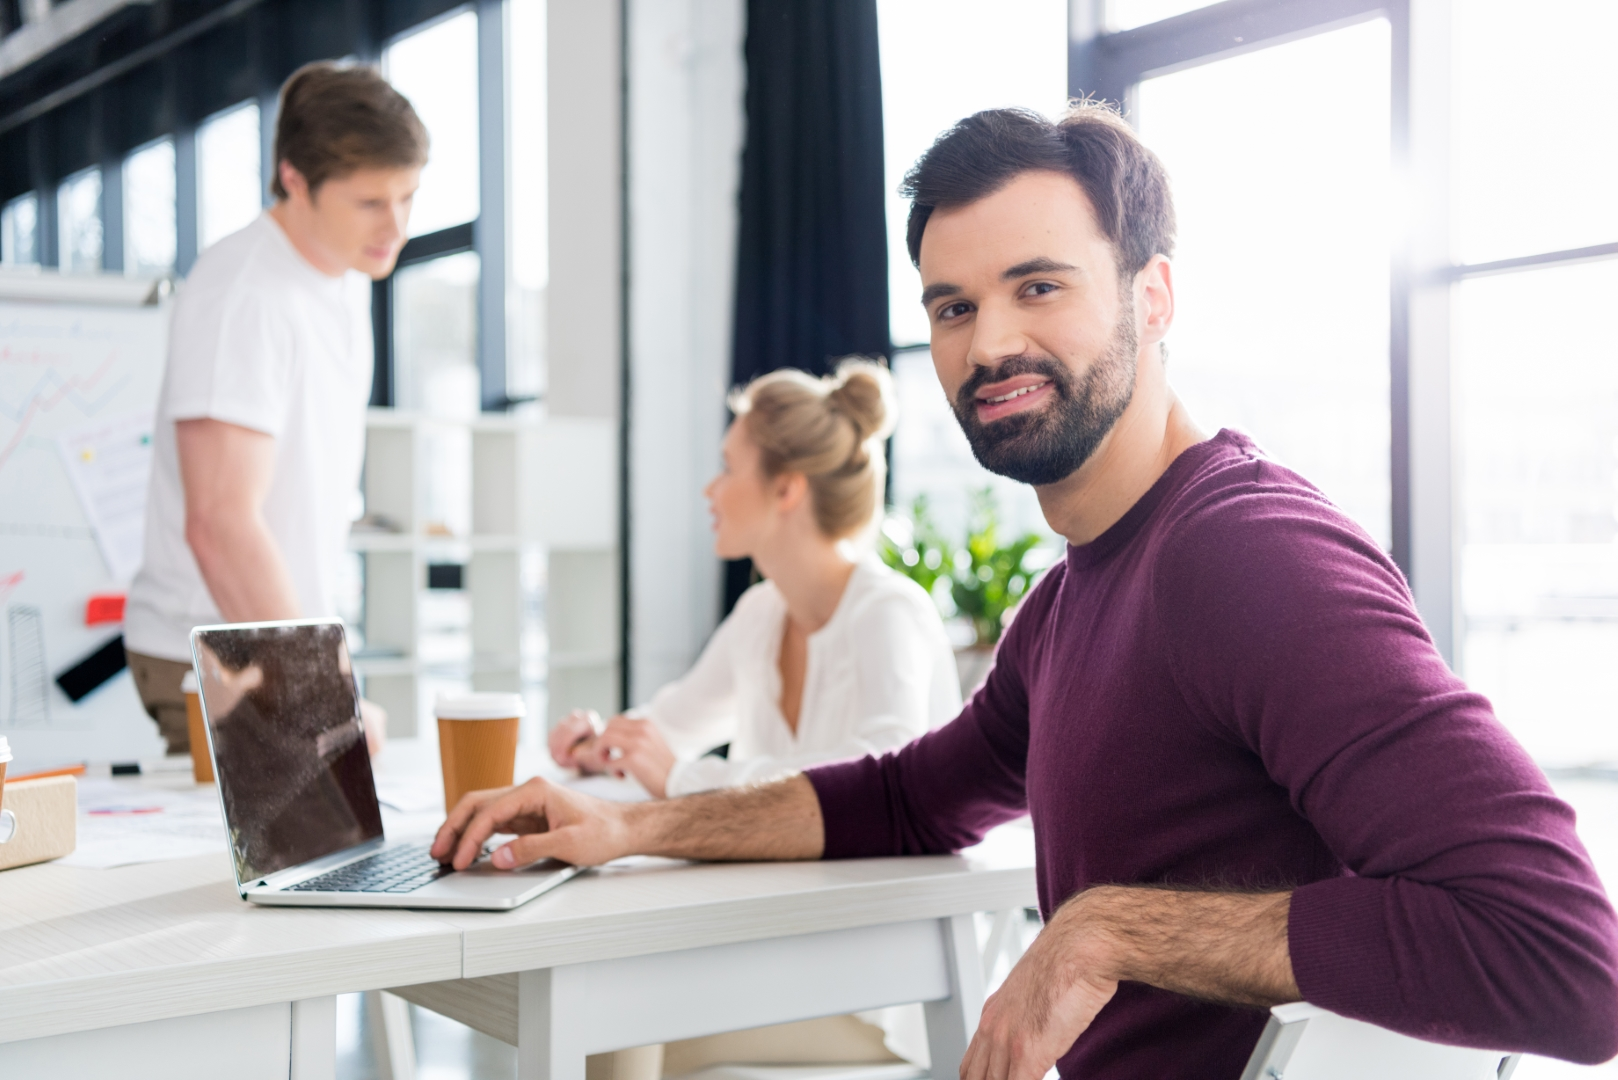 businessman working with laptop on workplace in office, colleagues behind, small business people